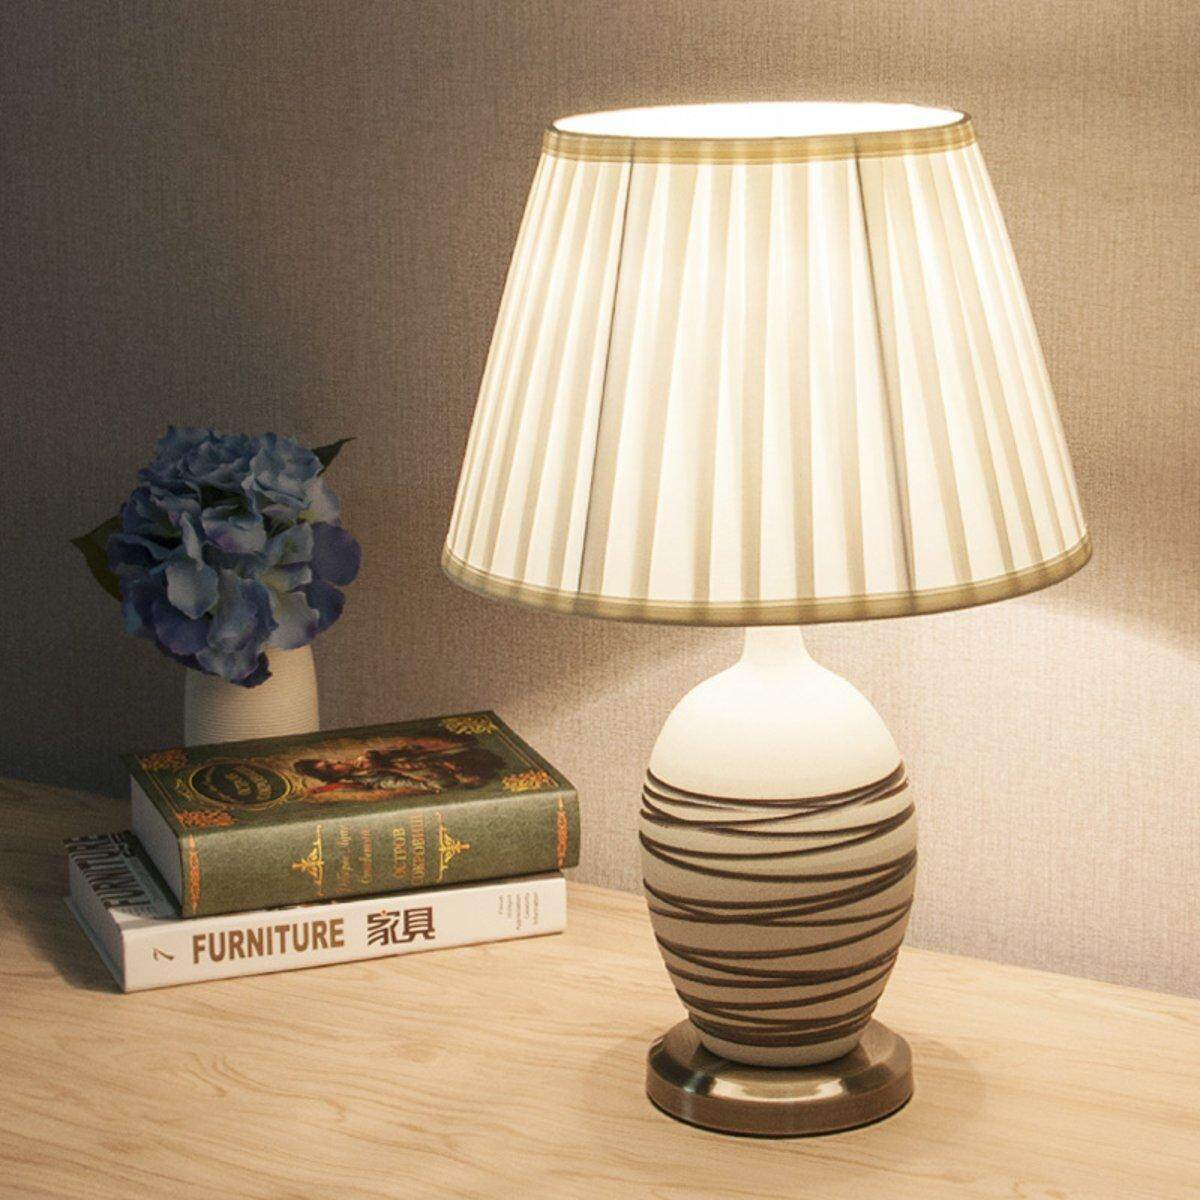 6 To 20 Fabric Box Pleat Lamp Shade Table Light Lampshade Mink Cream Ivory 400mm By Glimmer.